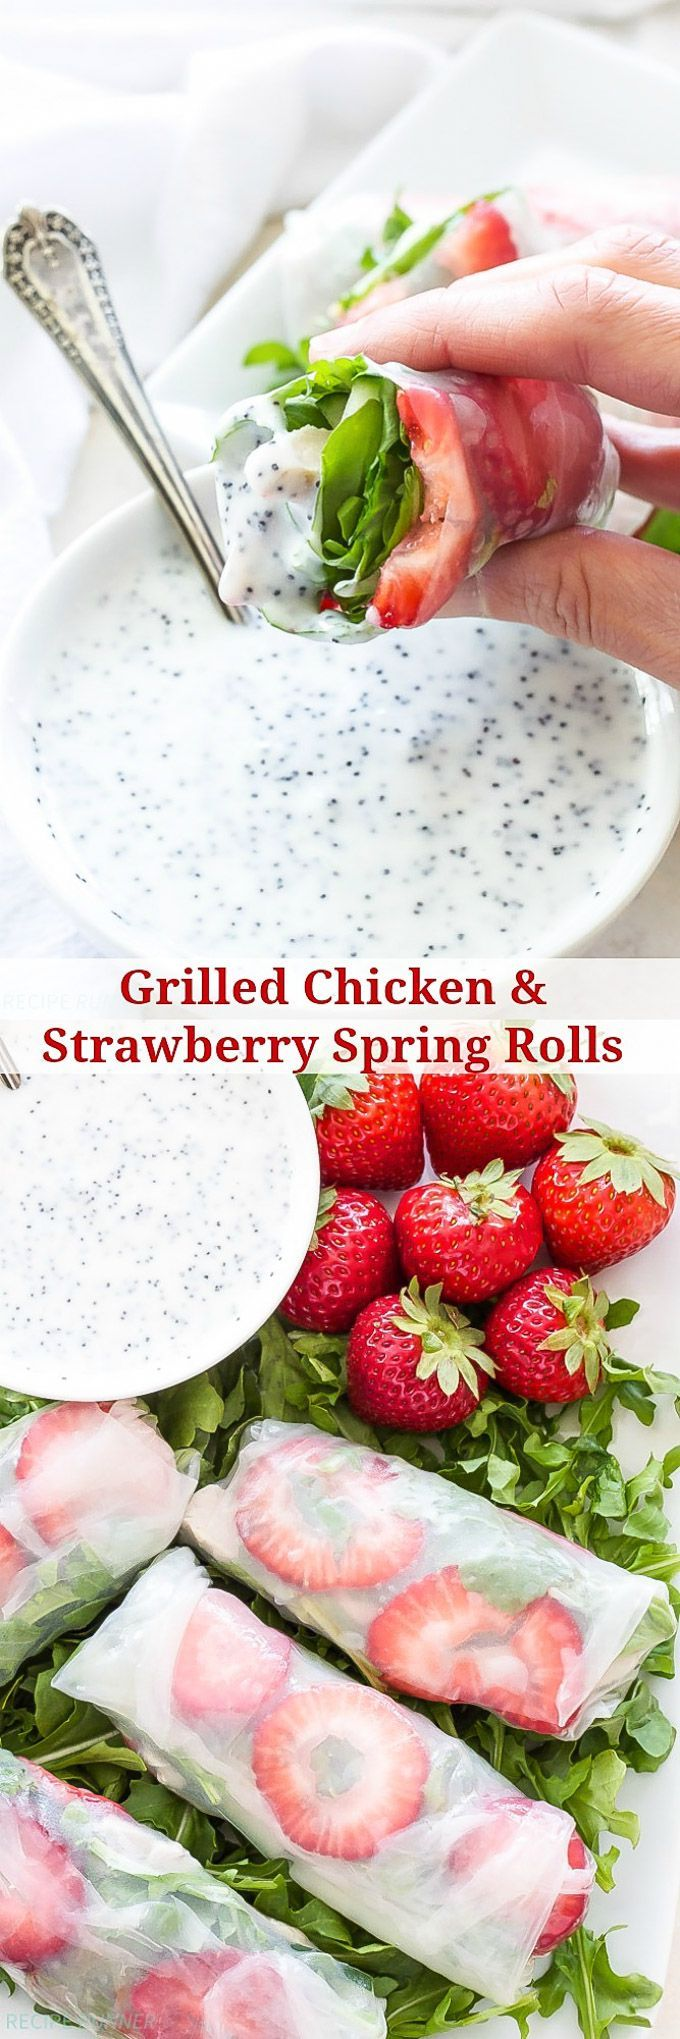 Grilled Chicken and Strawberry Spring Rolls | These fresh and crunchy spring rolls are full of summer flavor! Dip them in a healthy poppy seed dressing for a fun and easy appetizer!